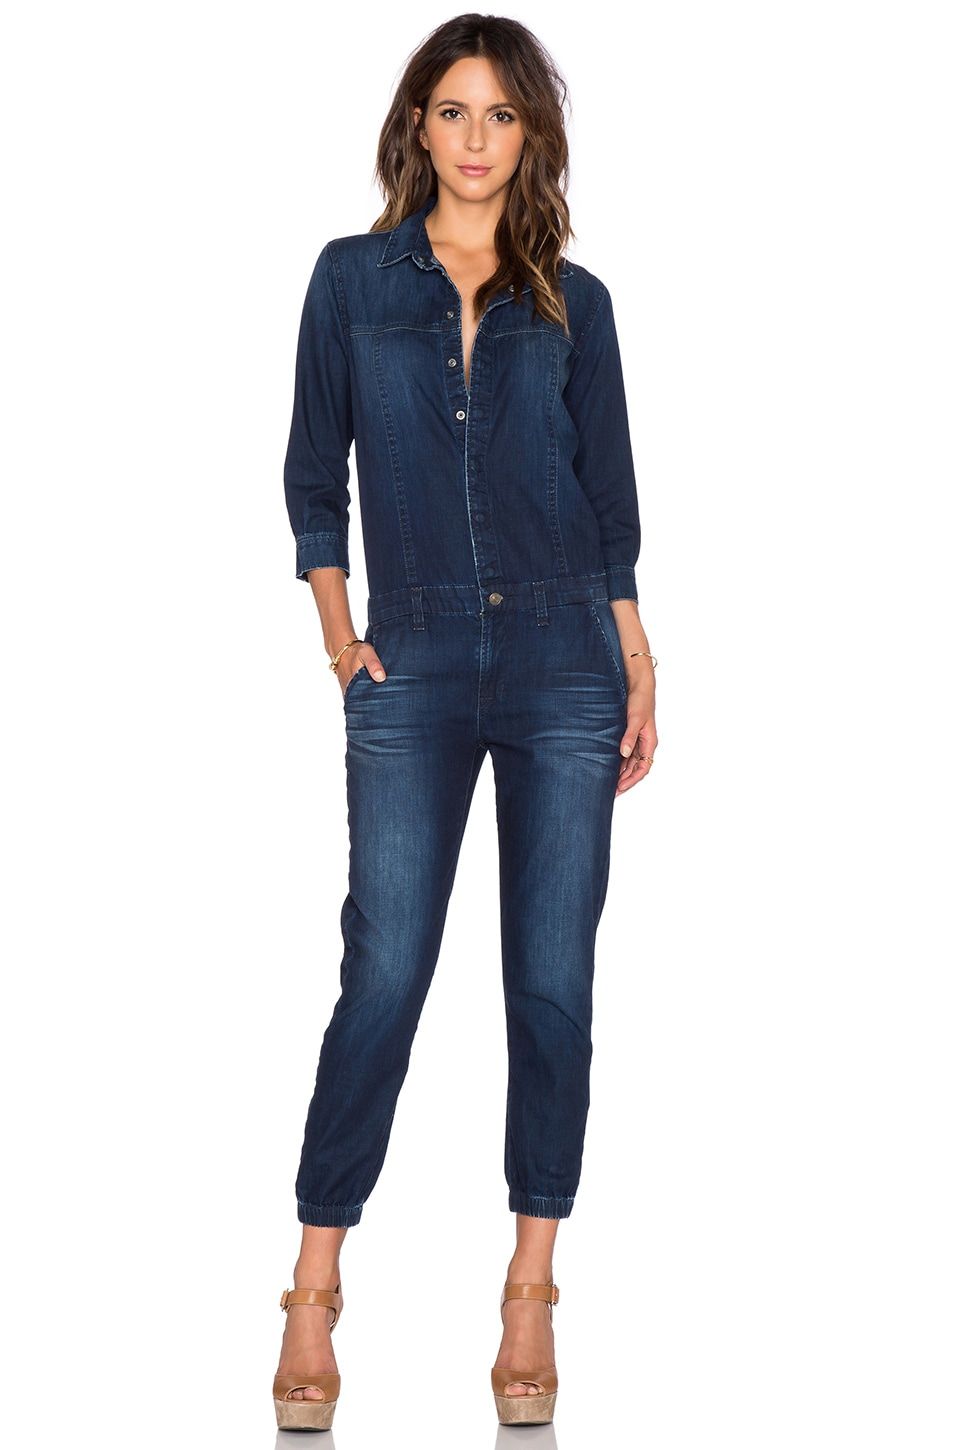 Hudson Jeans Ryder Jumpsuit in Miro